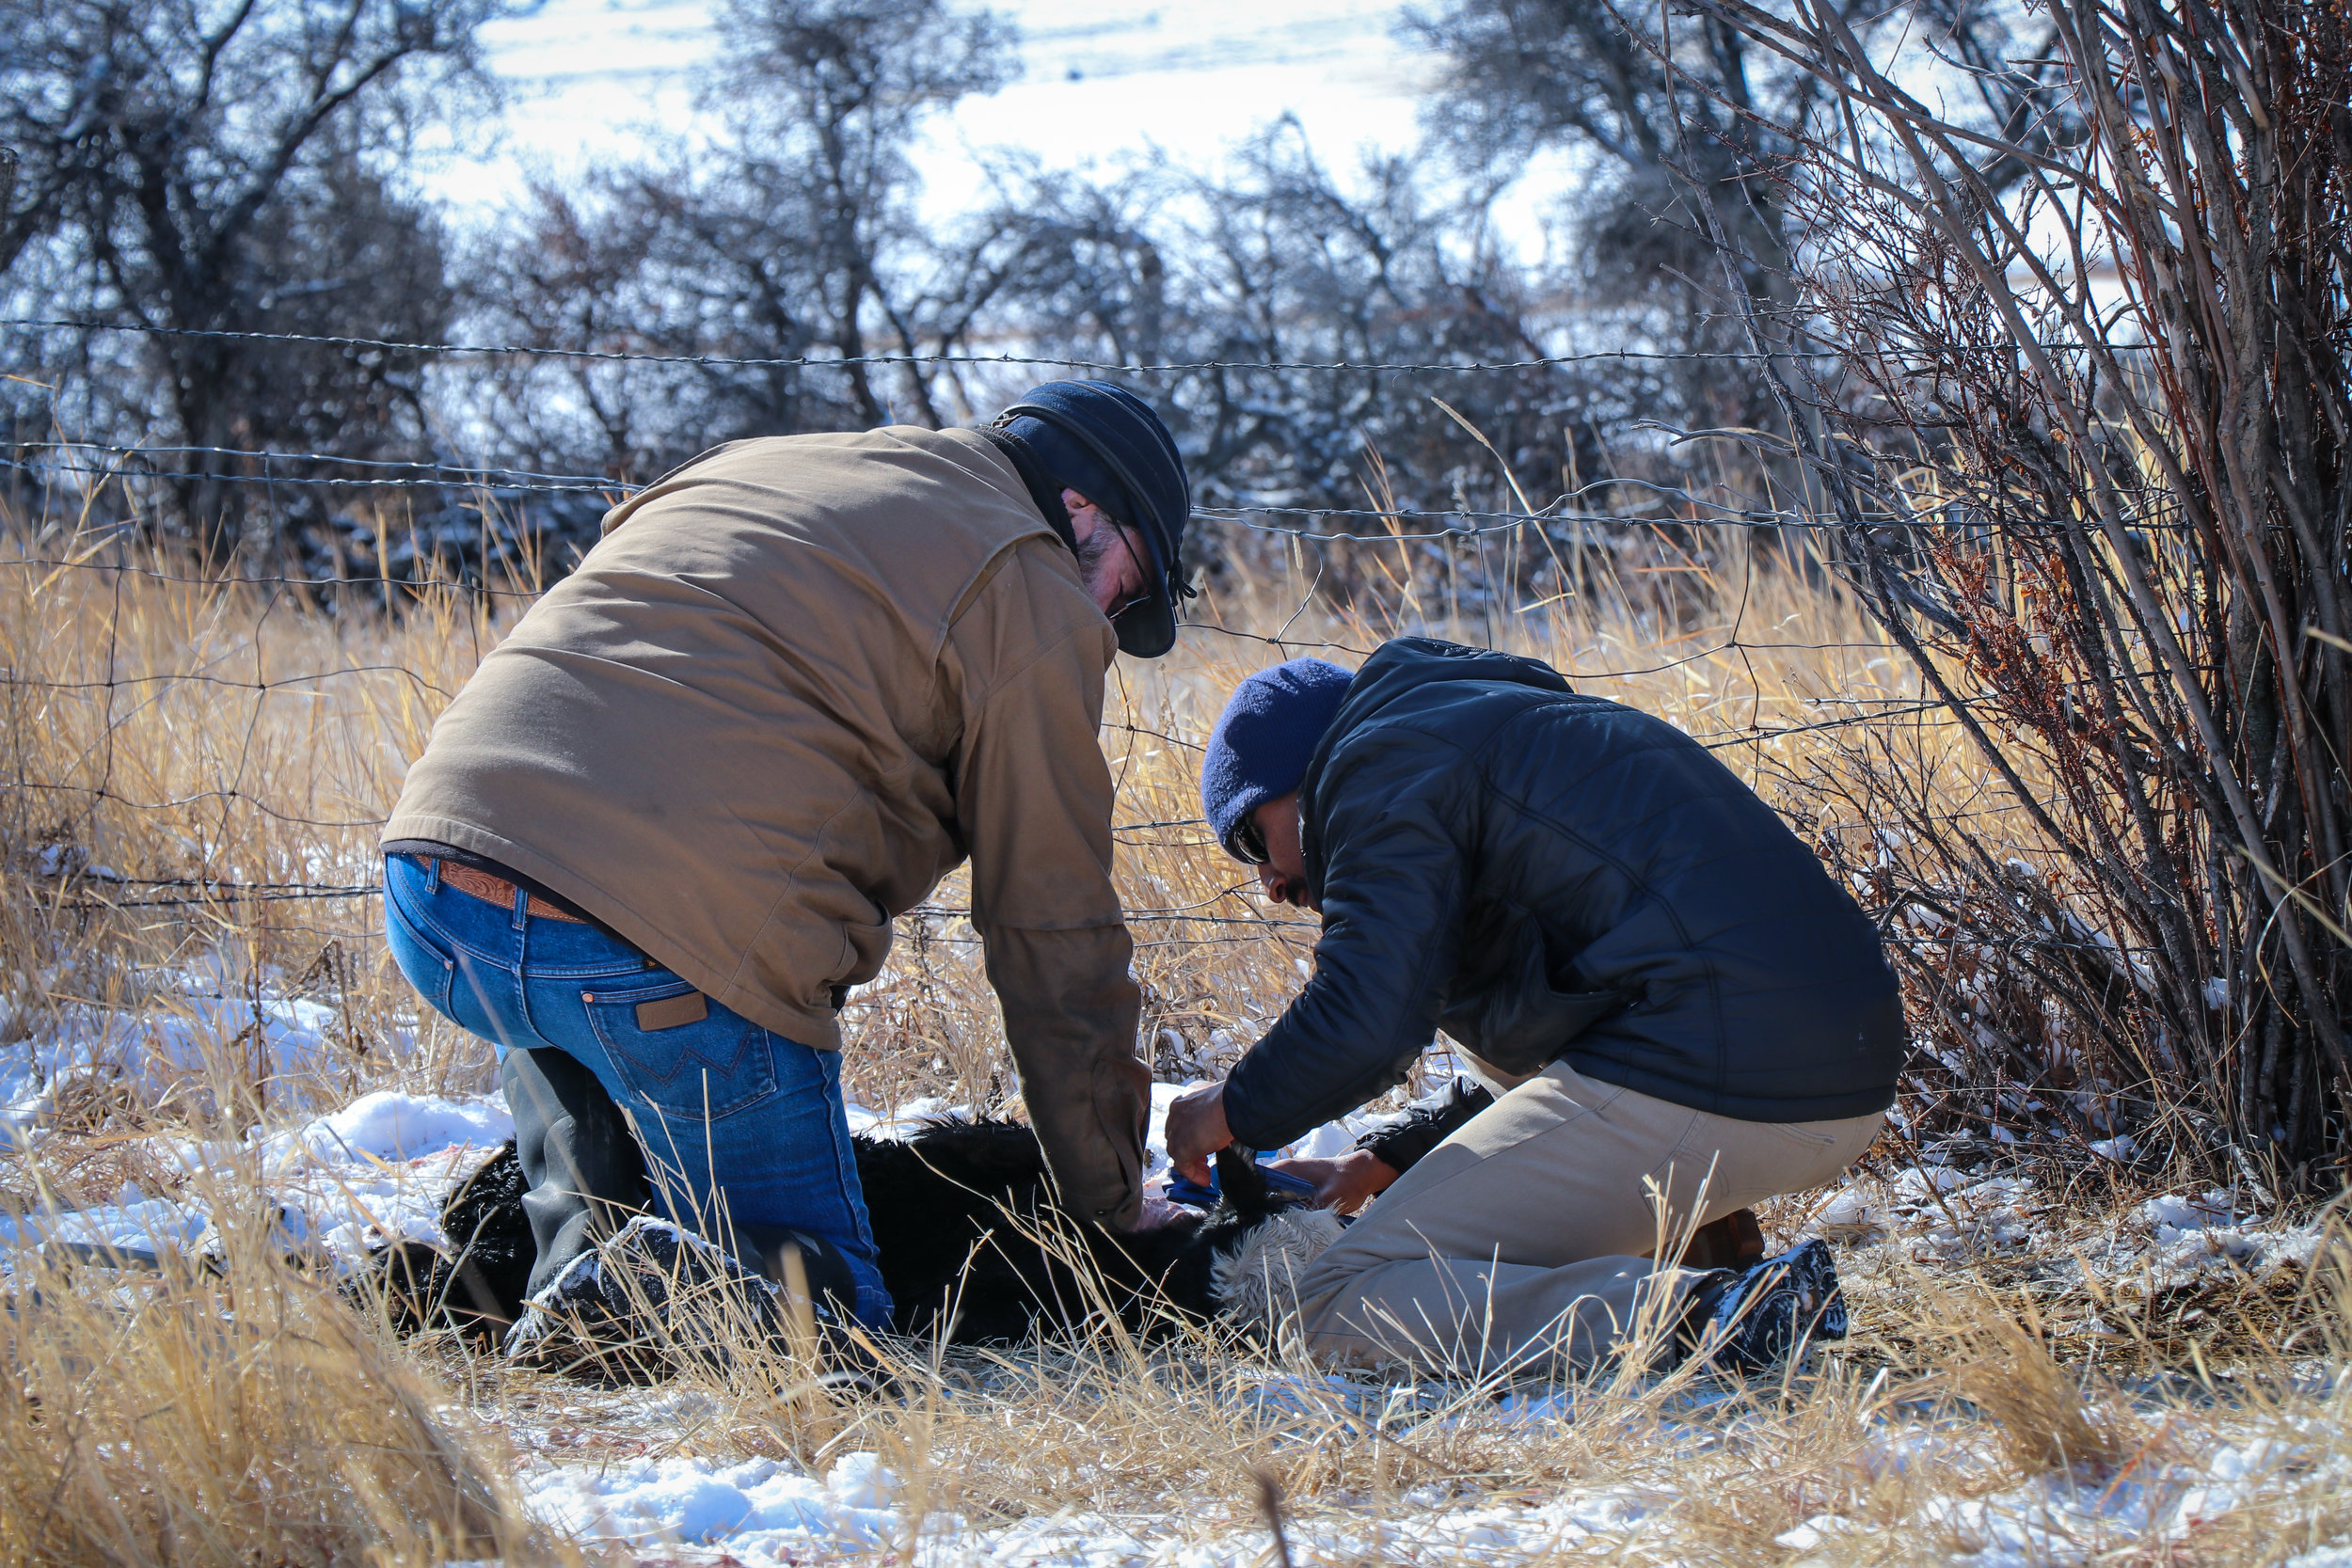 GYC's Director of Conservation, Siva Sundaresan (right), tags one of Neil's newborn calves. The tags identify which calf belongs to which cow. (Photo GYC/Emmy Reed.)